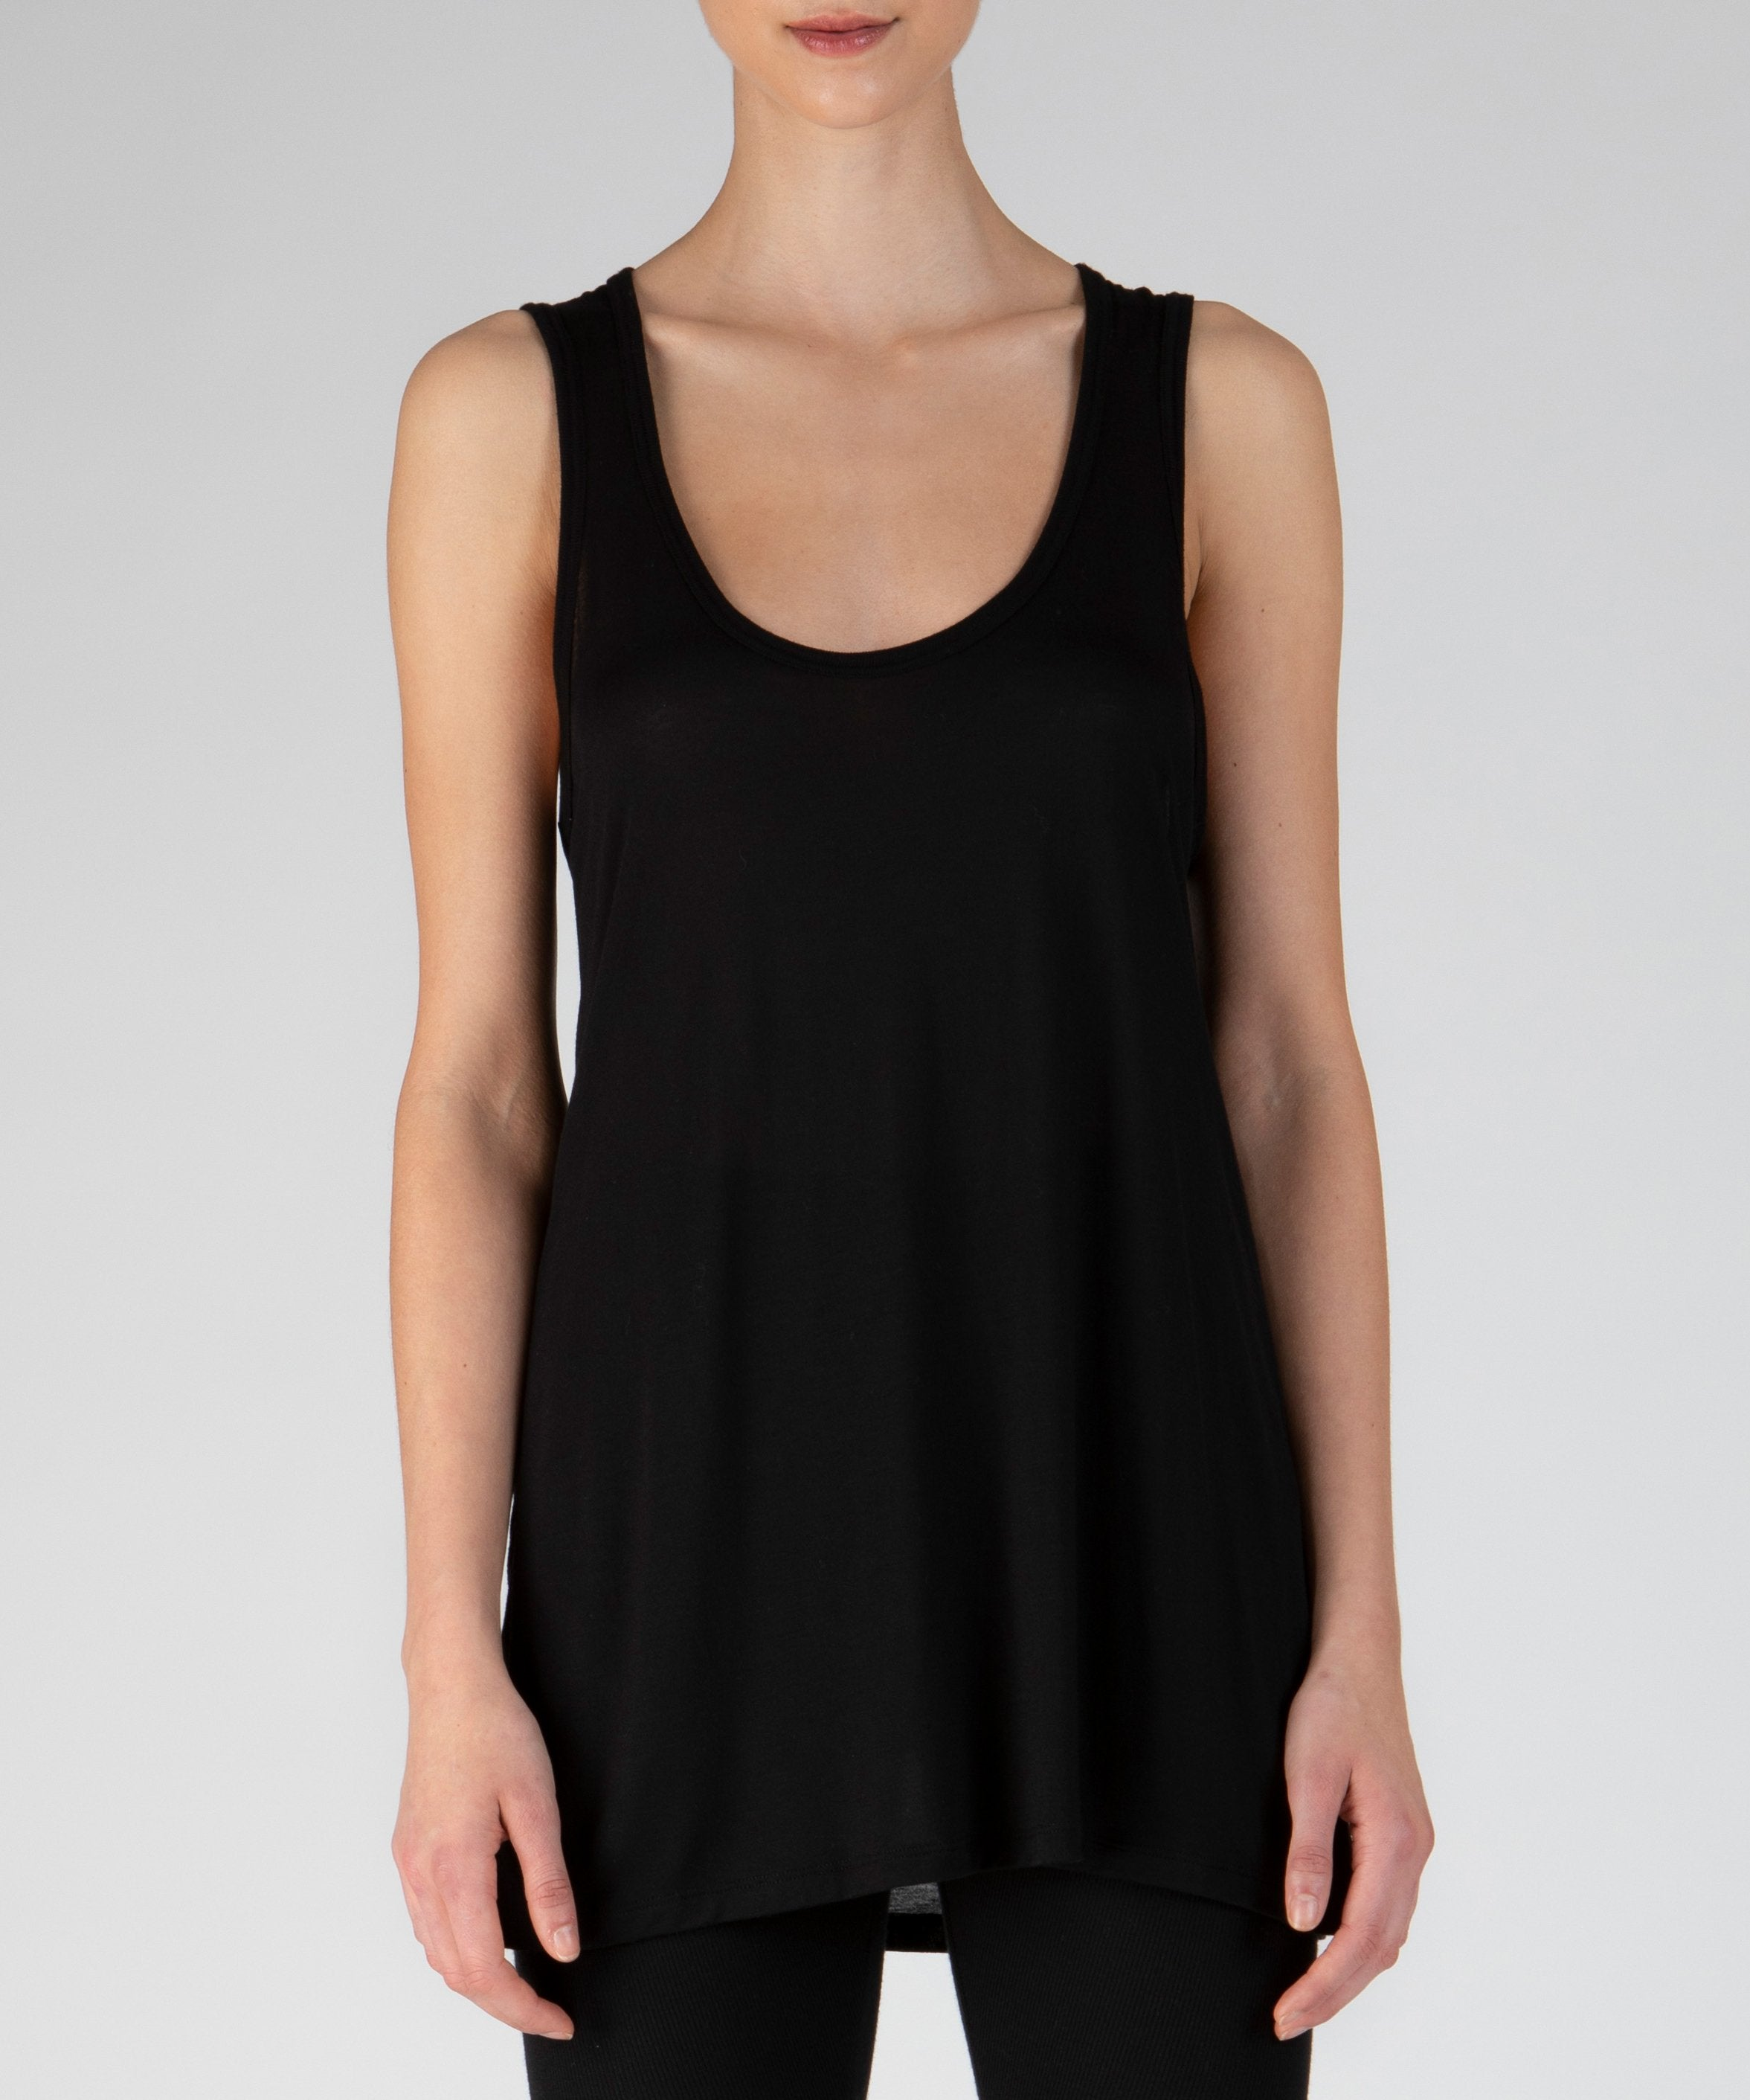 Black Modal Jersey Tank Top - Women's Jersey Tank Top by ATM Anthony Thomas Melillo